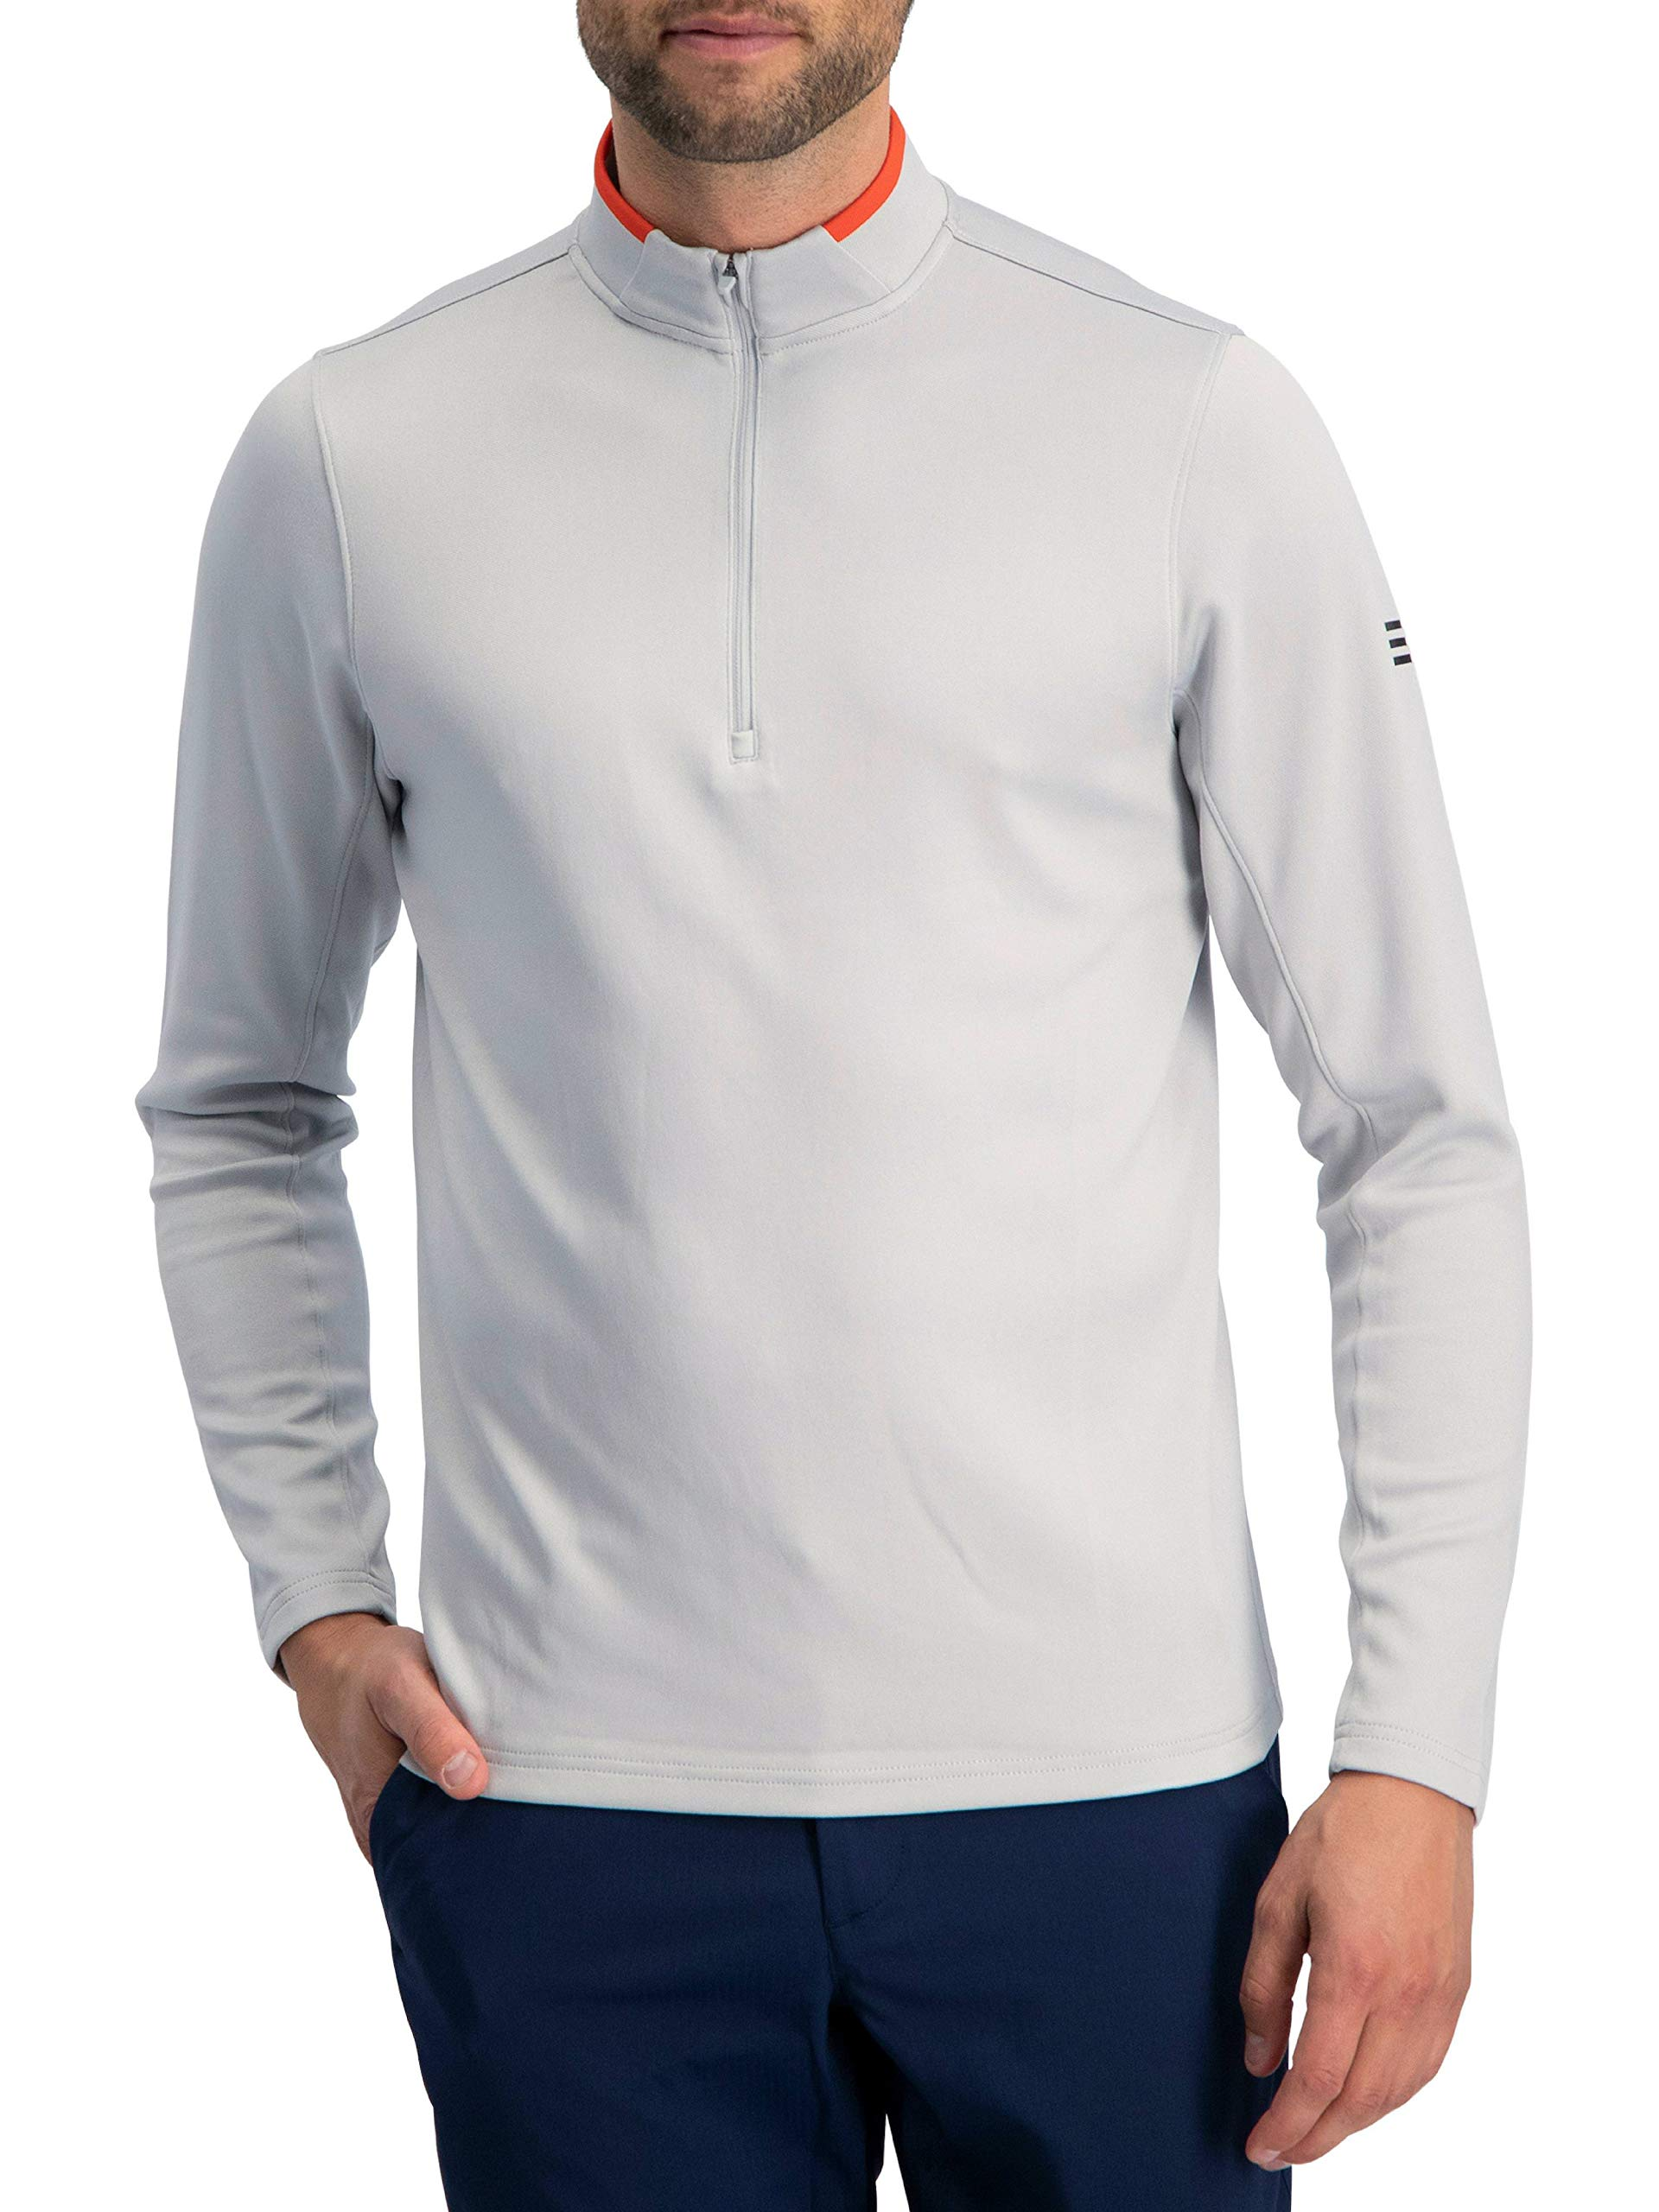 Golf Half Zip Pullover Men - Fleece Sweater Jacket - Mens Dry Fit Golf Shirts by Three Sixty Six